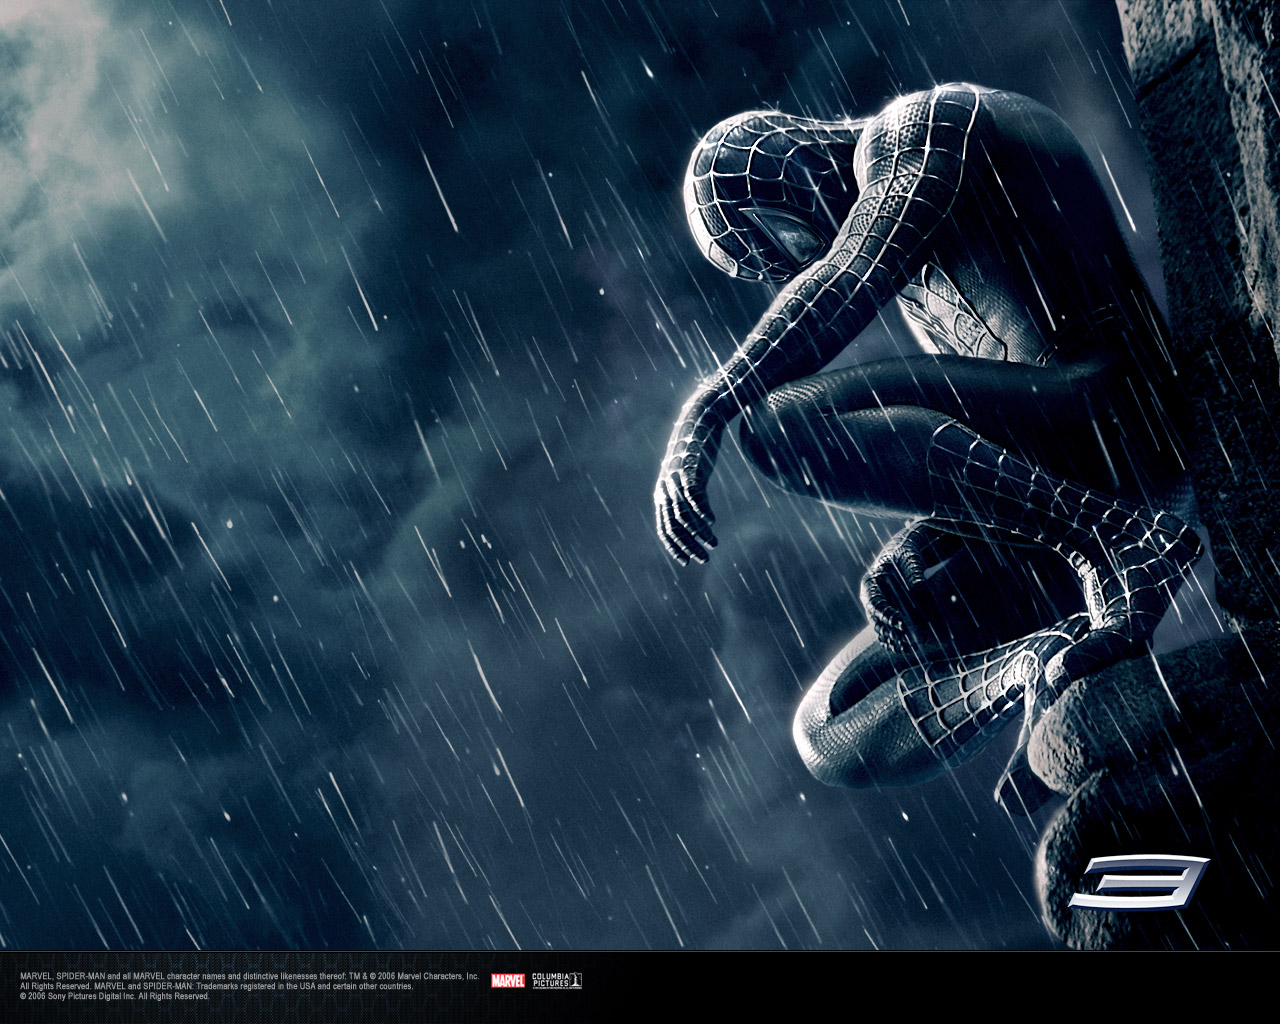 Download wallpapers free spiderman movie wallpapers free